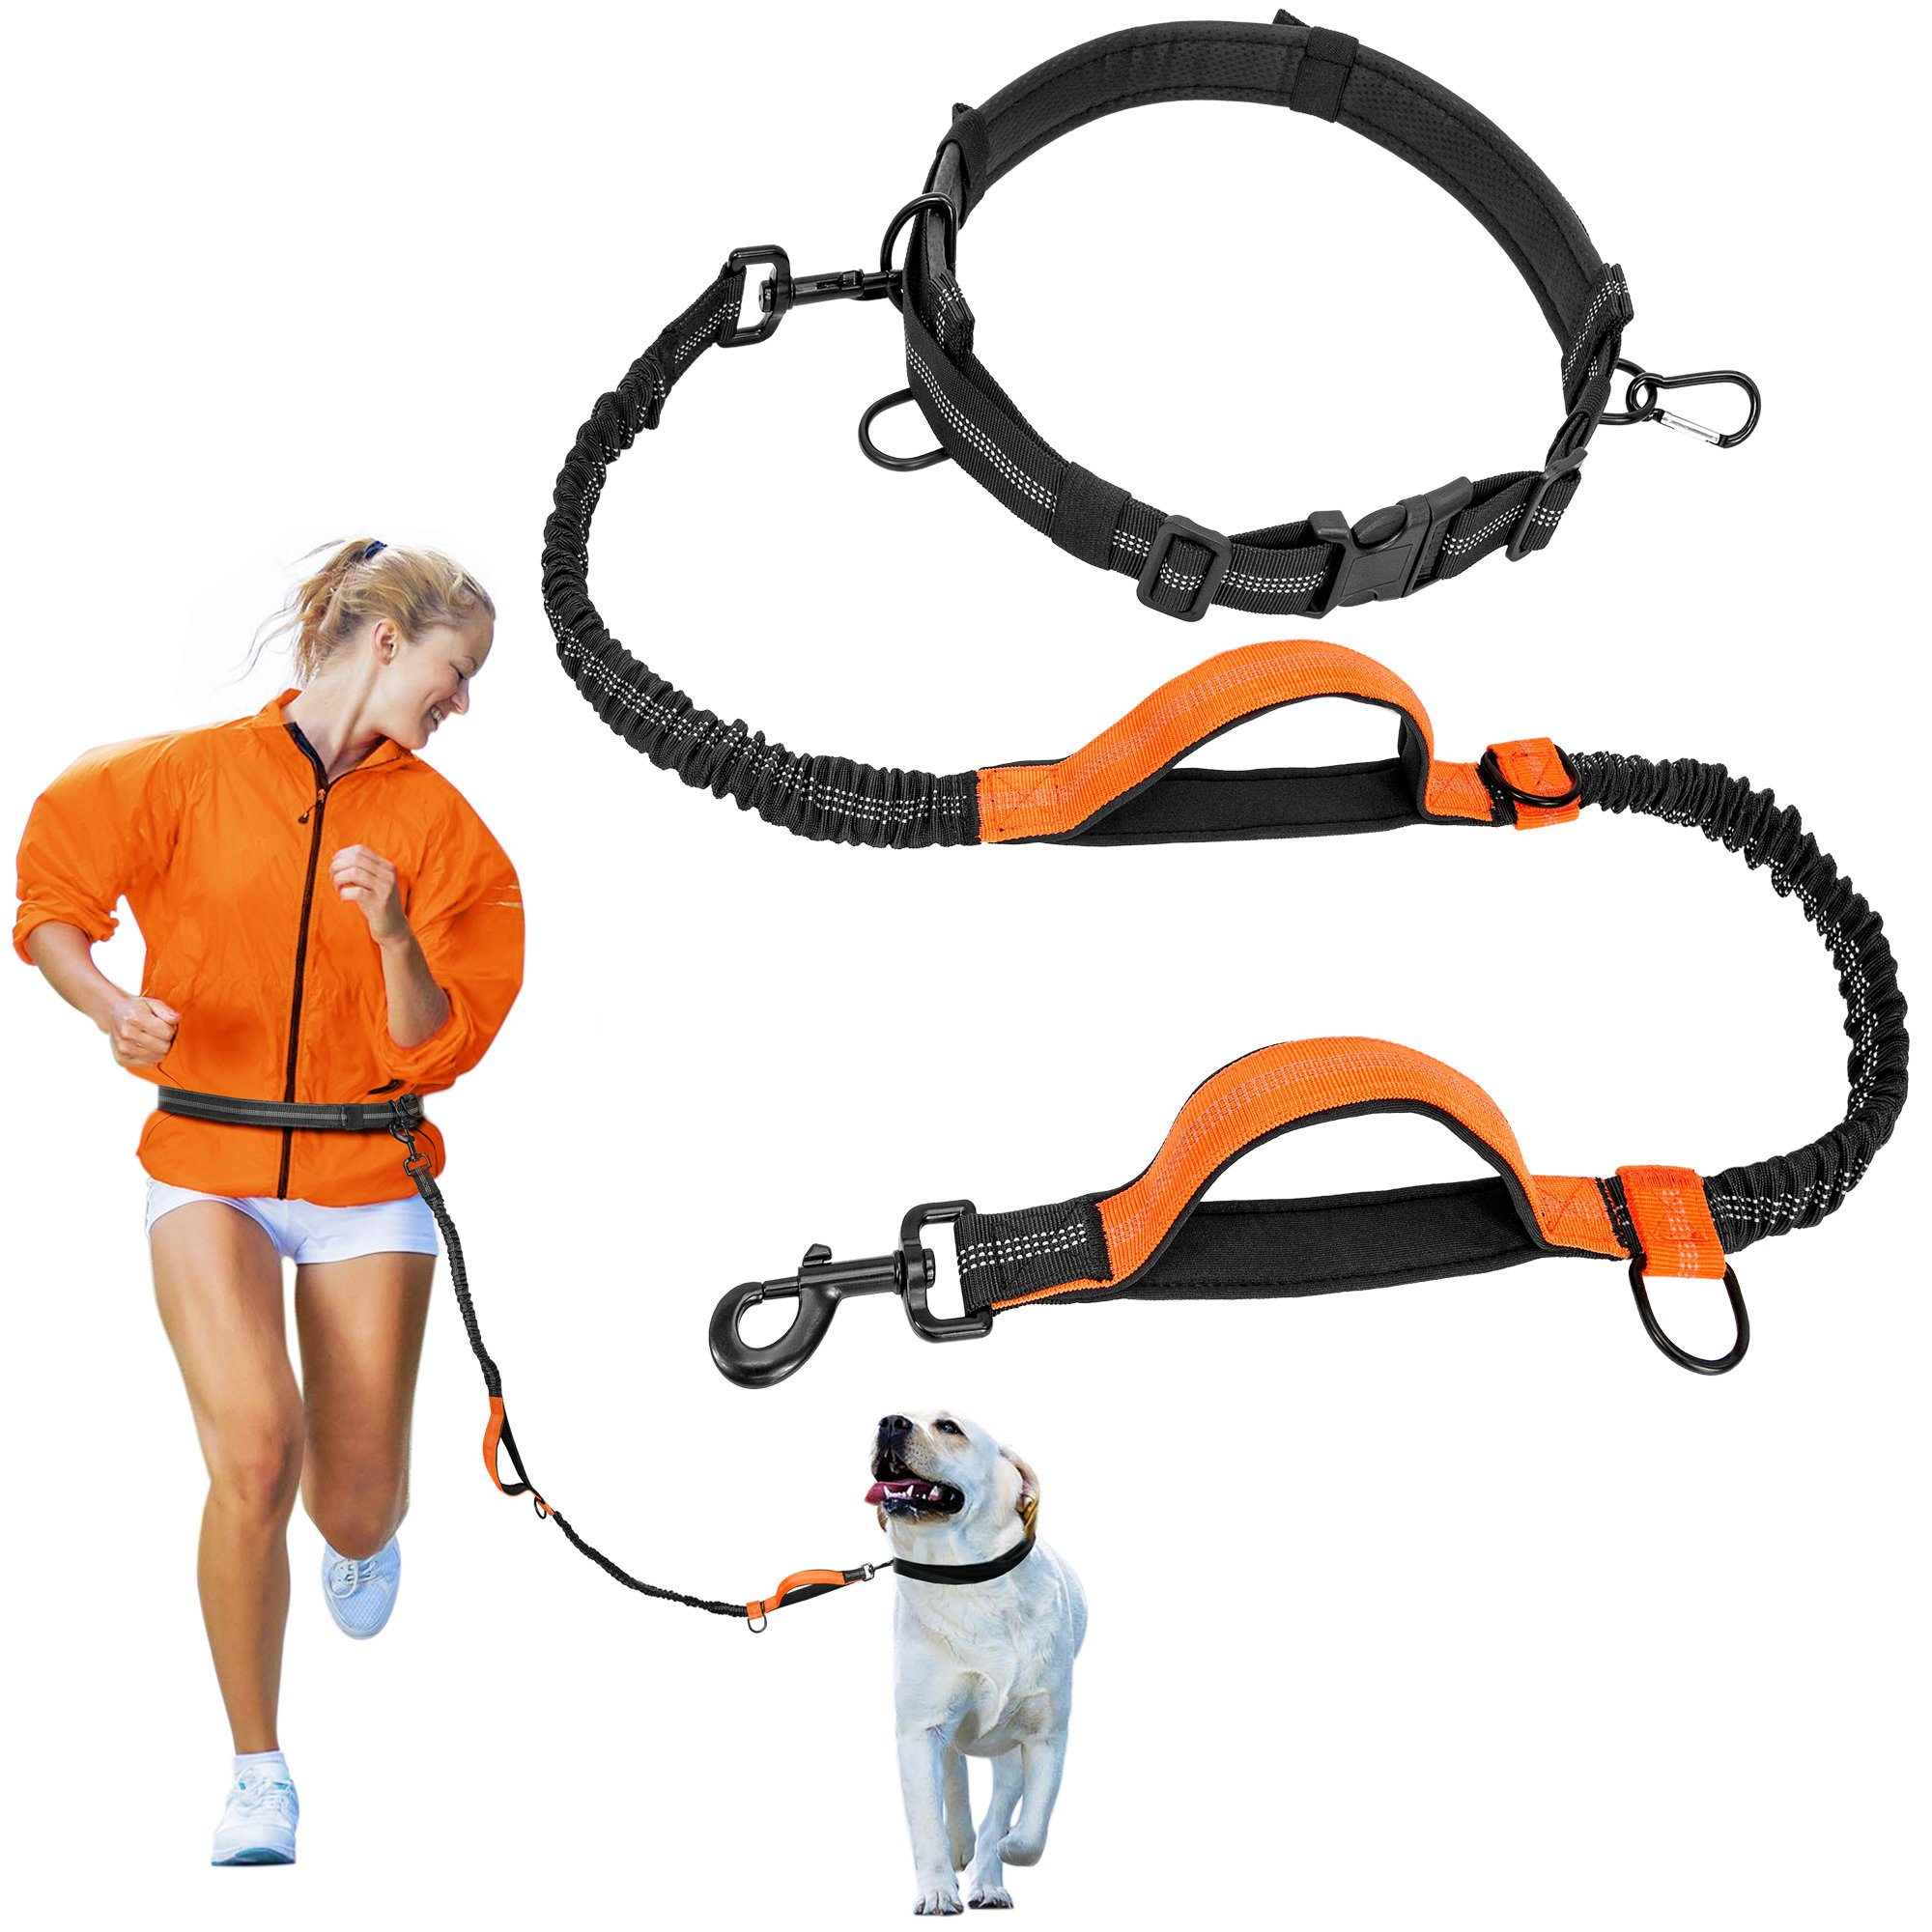 iSPECLE Hands Free Dog Leash, Retractable Dog Leash with Dual Bungees for Dogs, Double Padded Reflective Waist Running Leash Strong Adjustable Waist Belt for Running Walking up to 150lbs Large Dogs